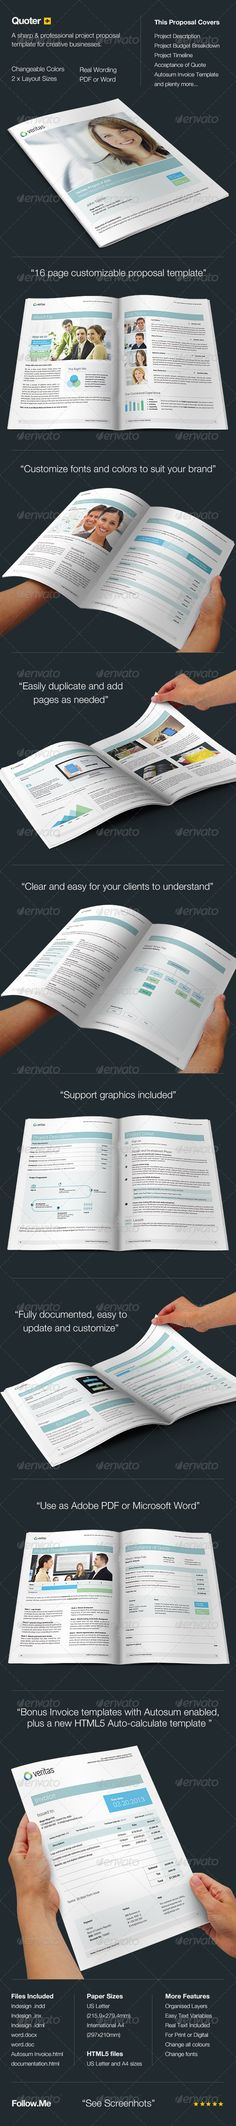 44 best project proposal images on pinterest page layout brochure